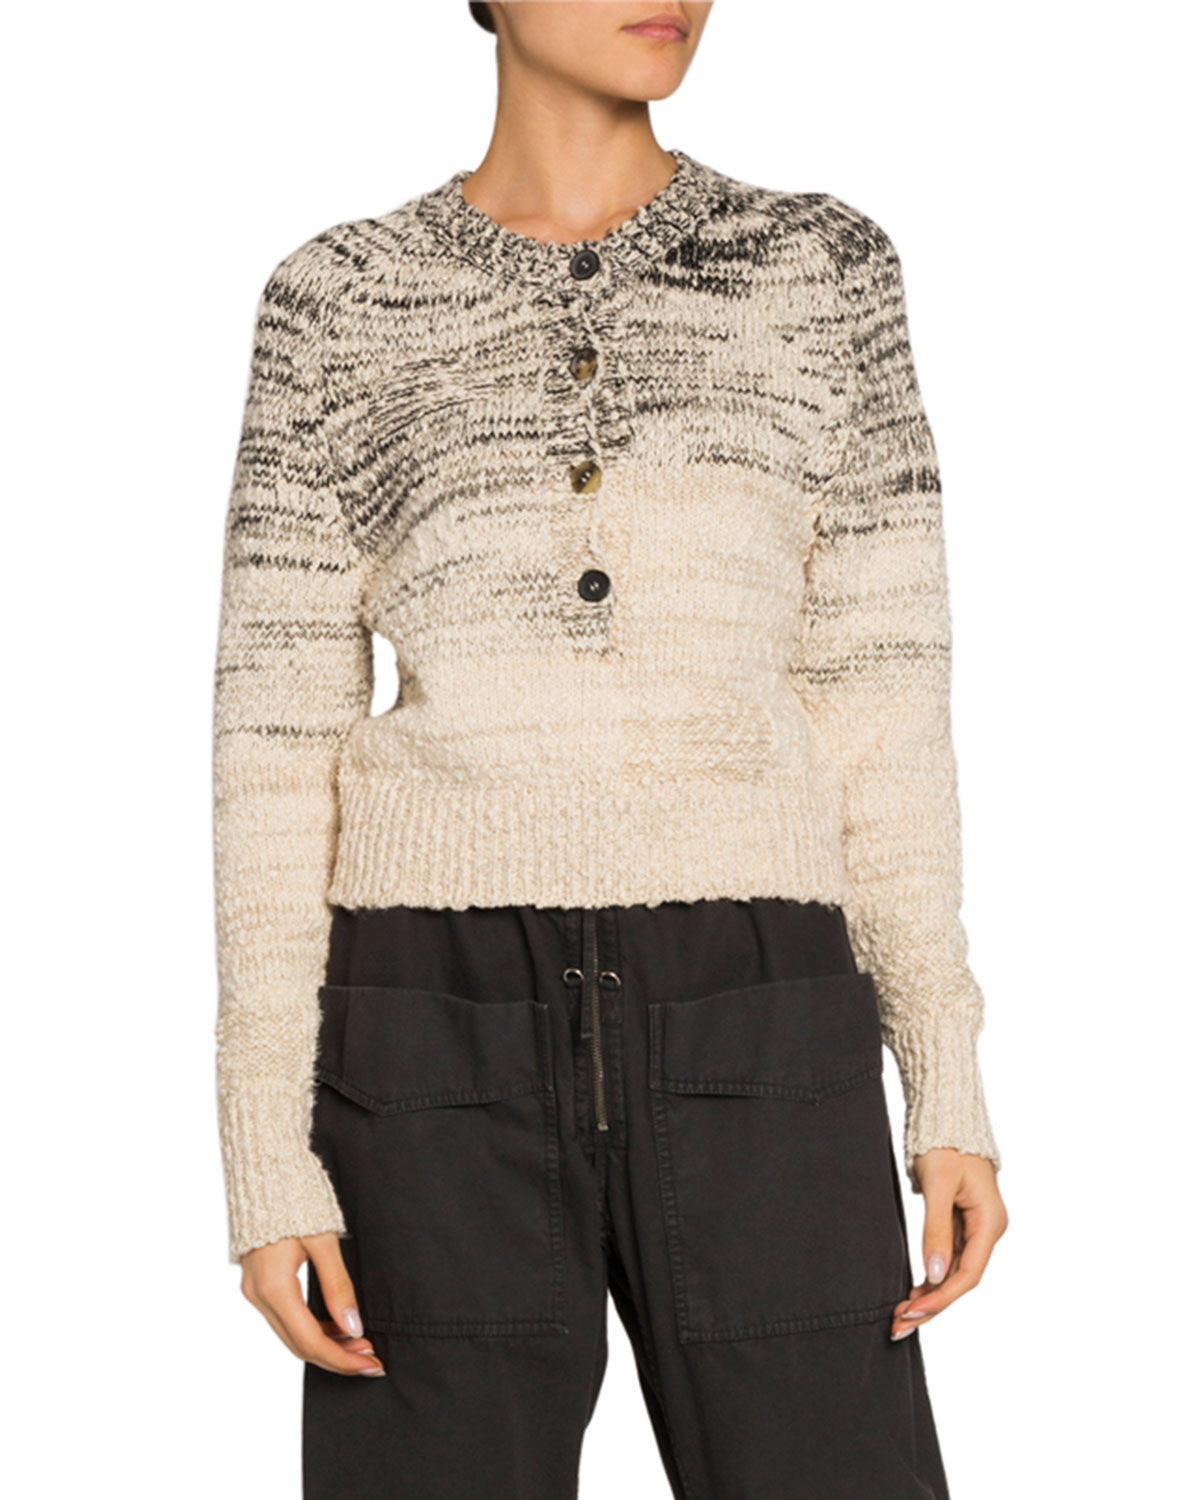 Etoile Isabel Marant Sweaters PATTY BUTTON-FRONT CREWNECK SWEATER